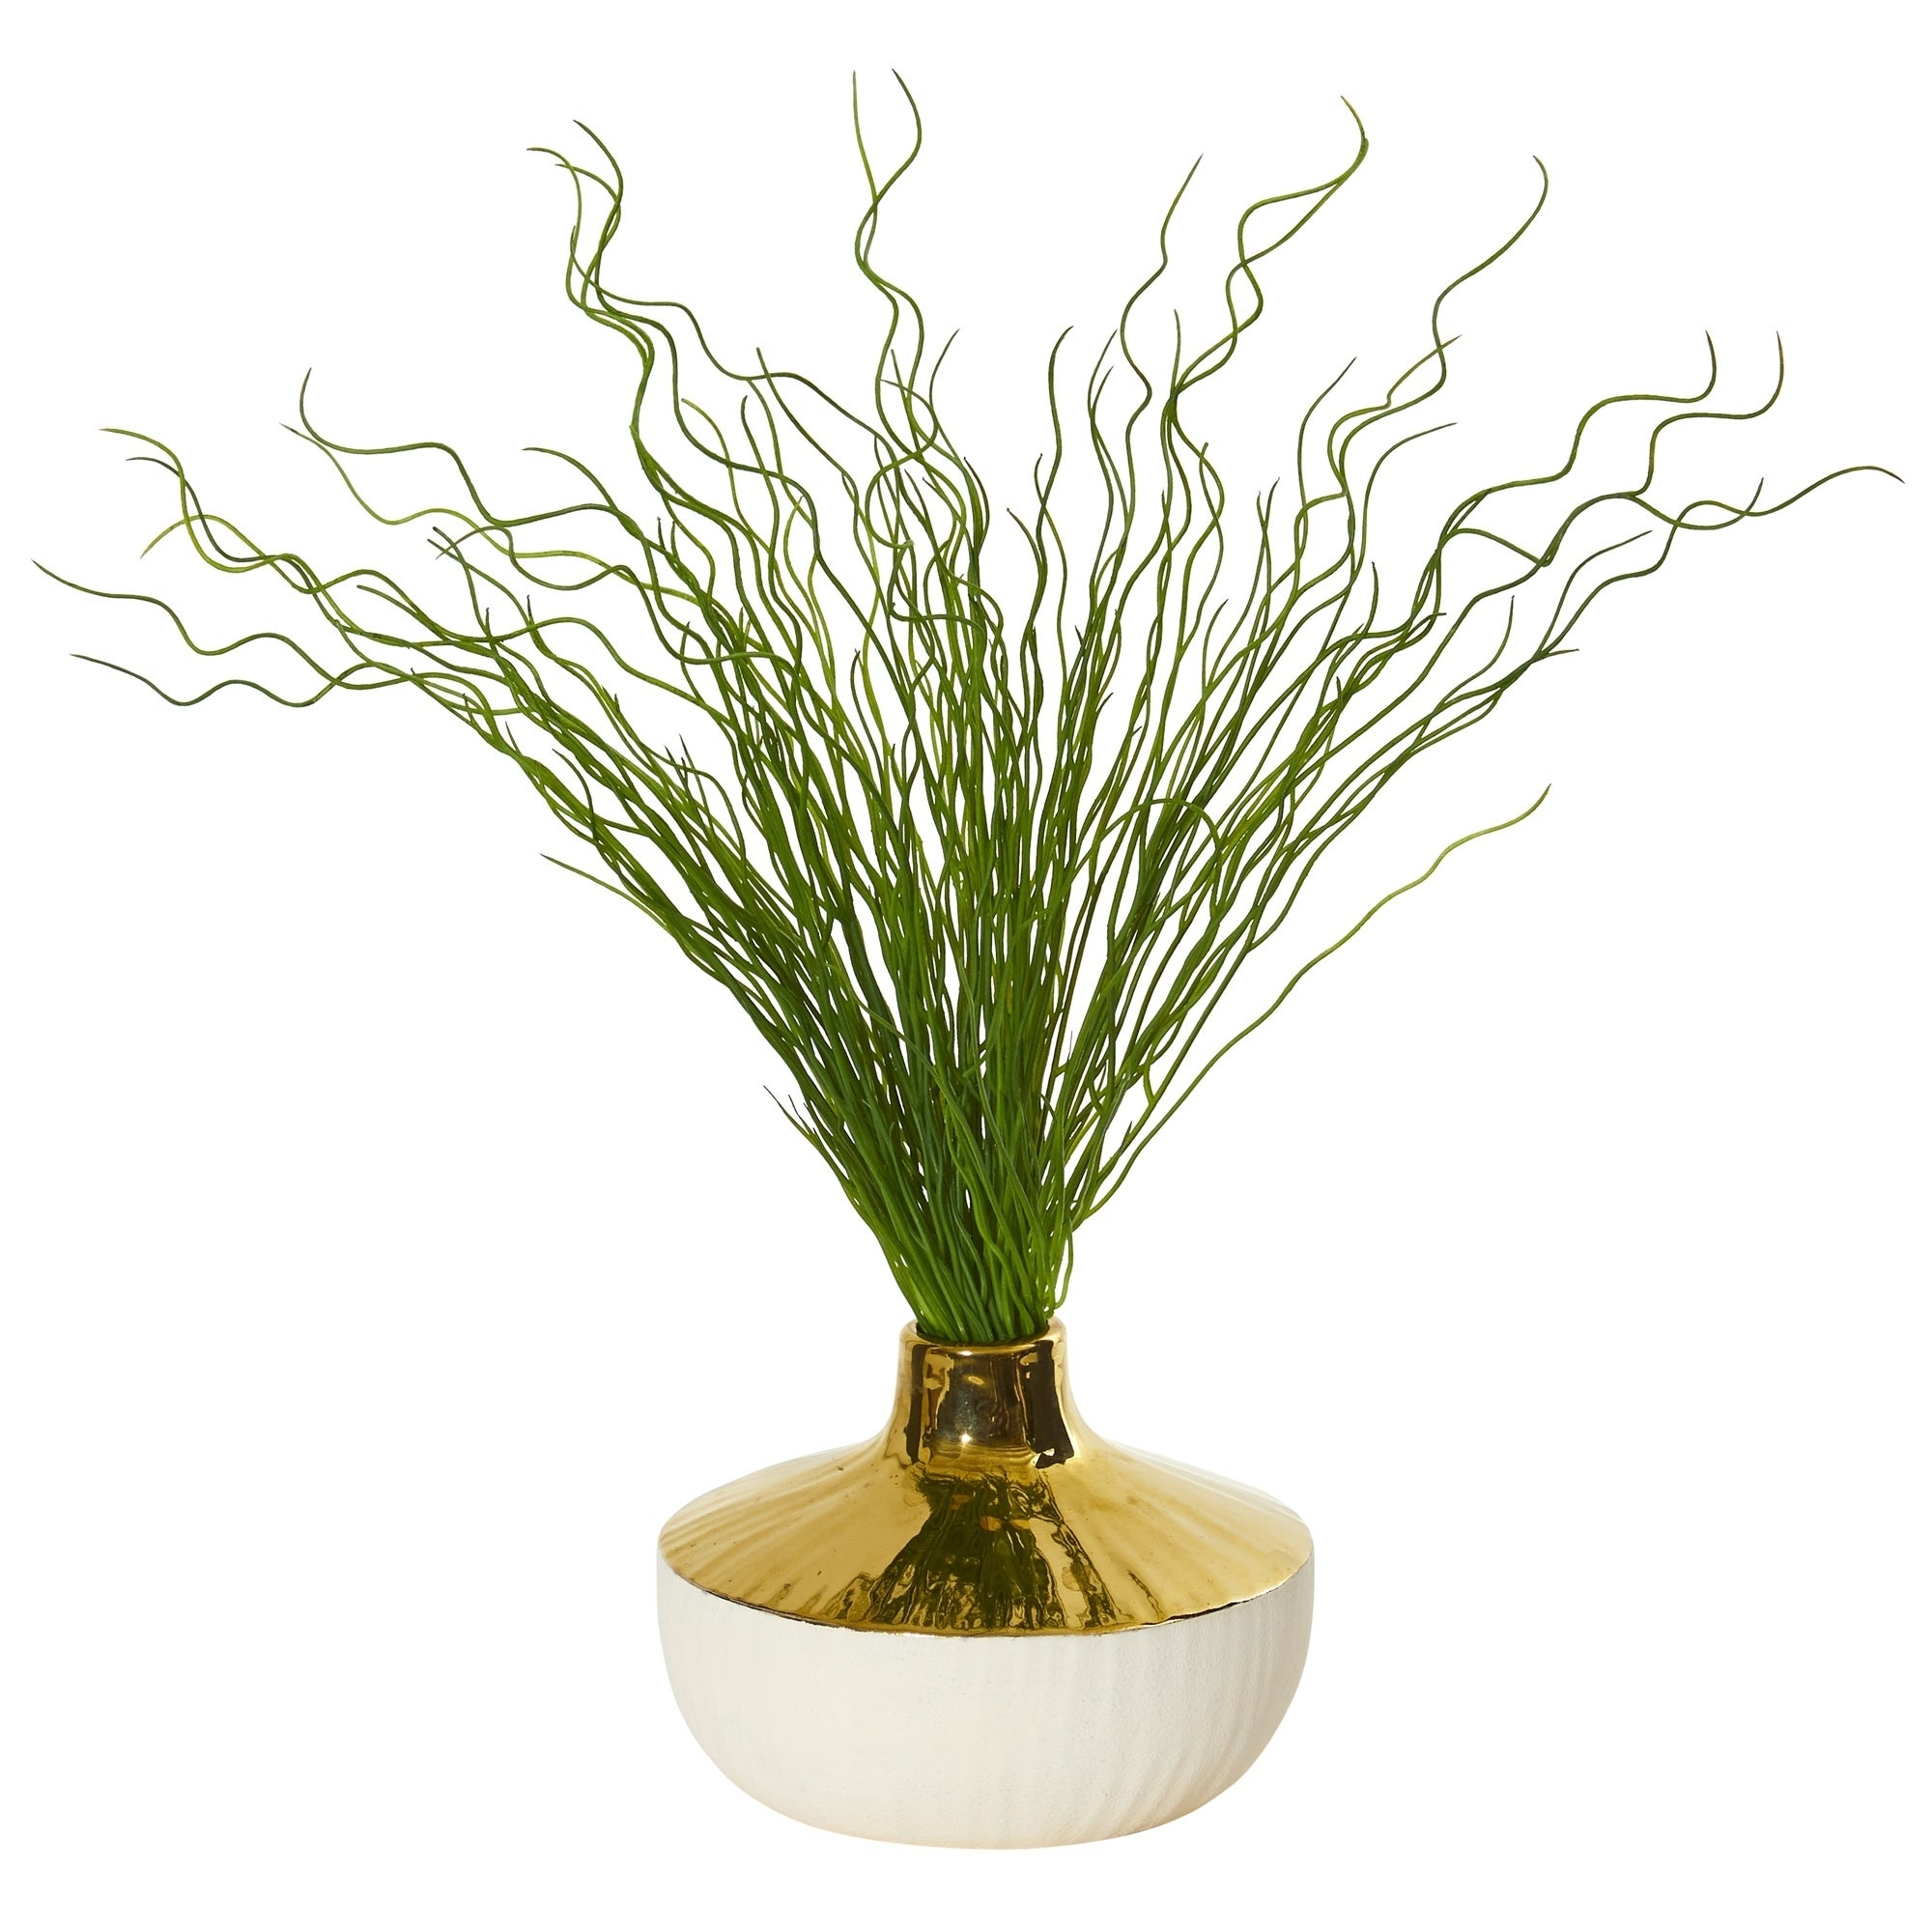 19 Curly Grass Artificial Plant in Designer Planter